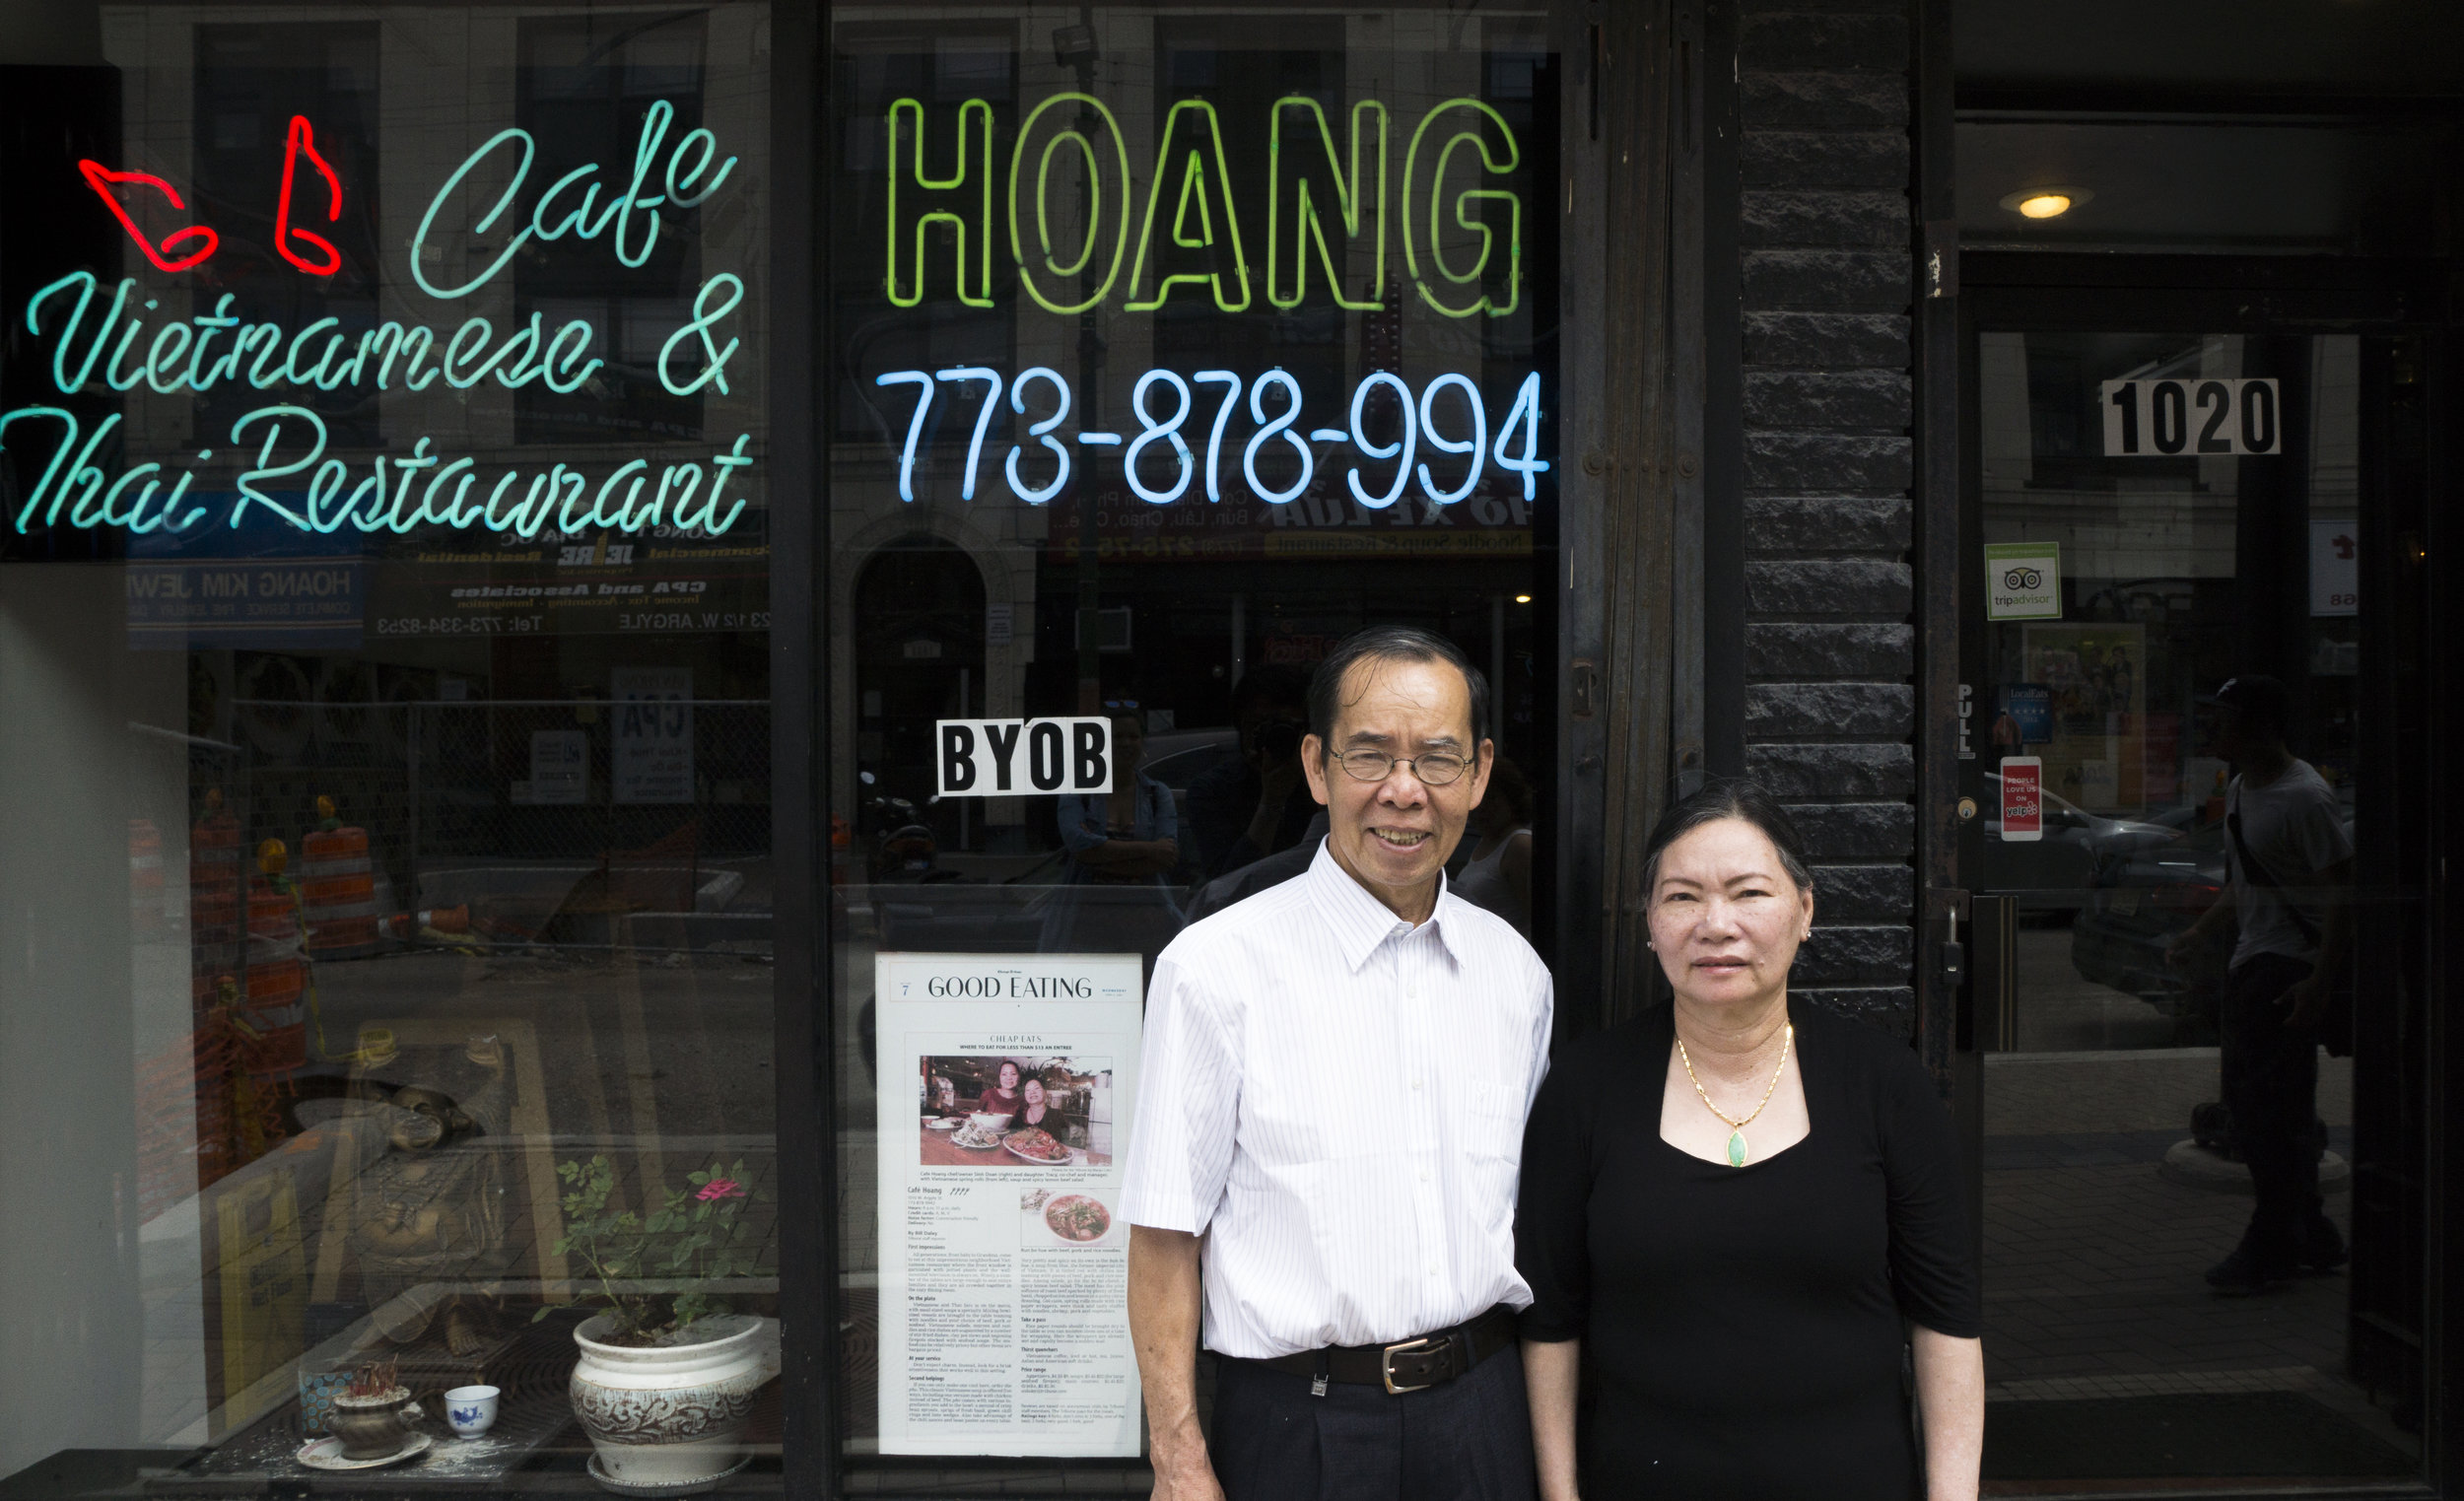 Doan Thi Sinh and her husband,Huang Do of Cafe Hoang